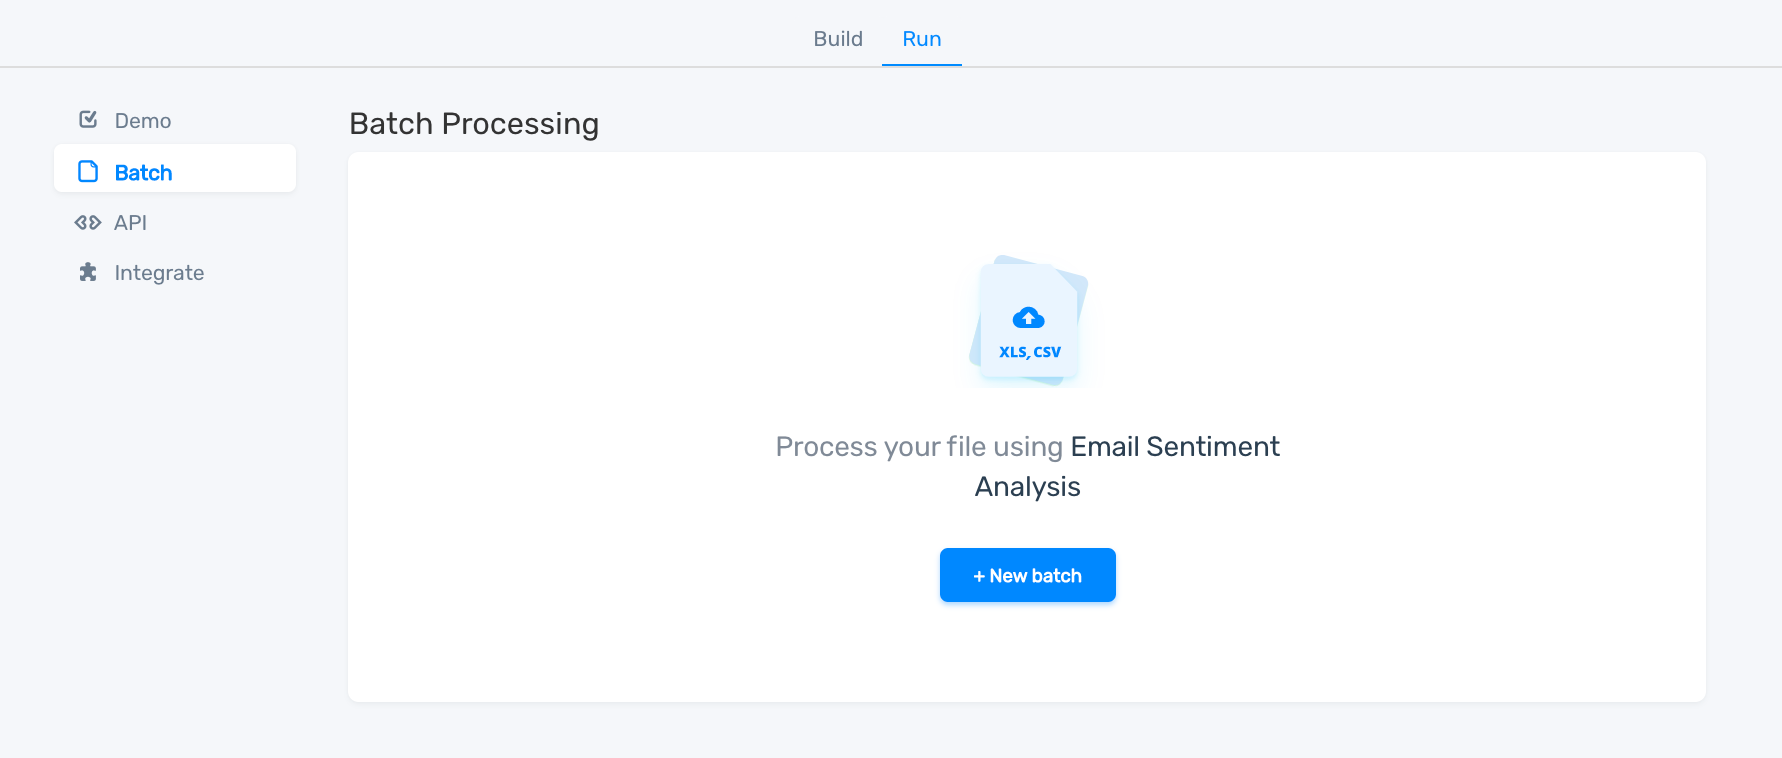 How to upload a file for batch processing